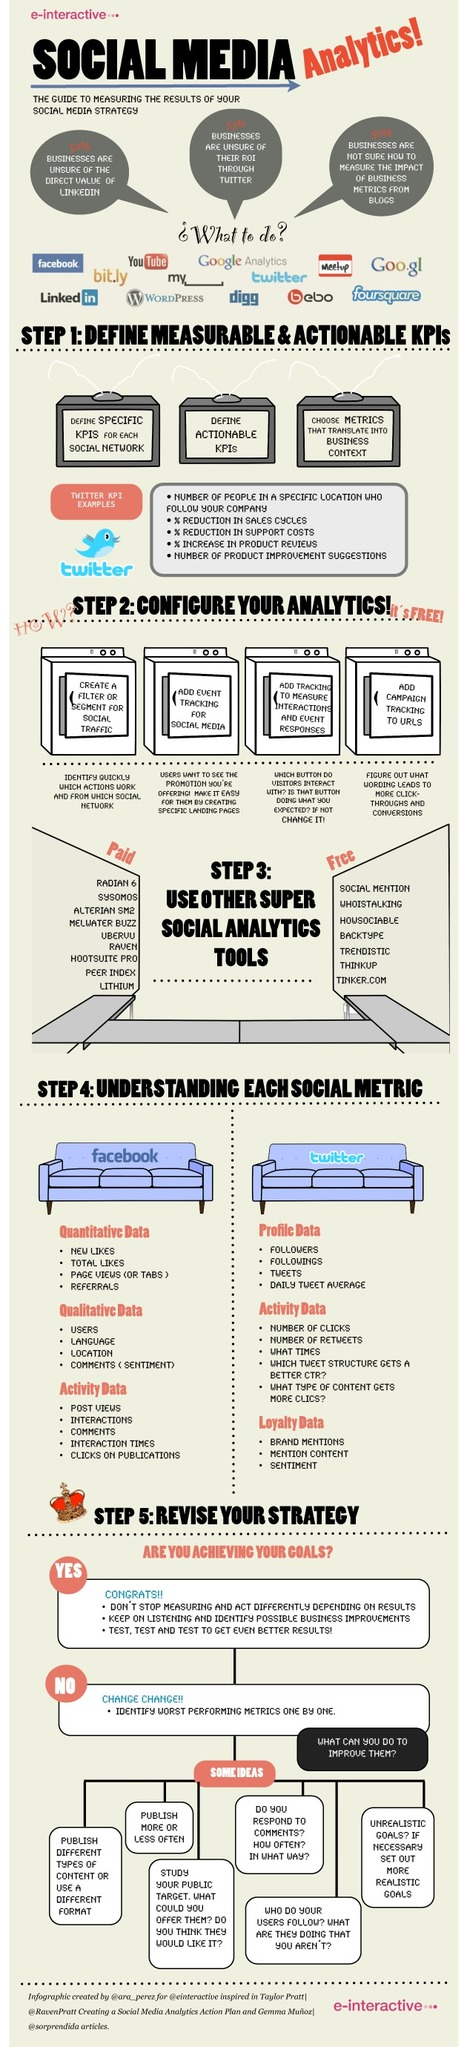 Measure Your Social Media Strategy with this Great Guide [Infographic] | Marketing & Strategy | Scoop.it